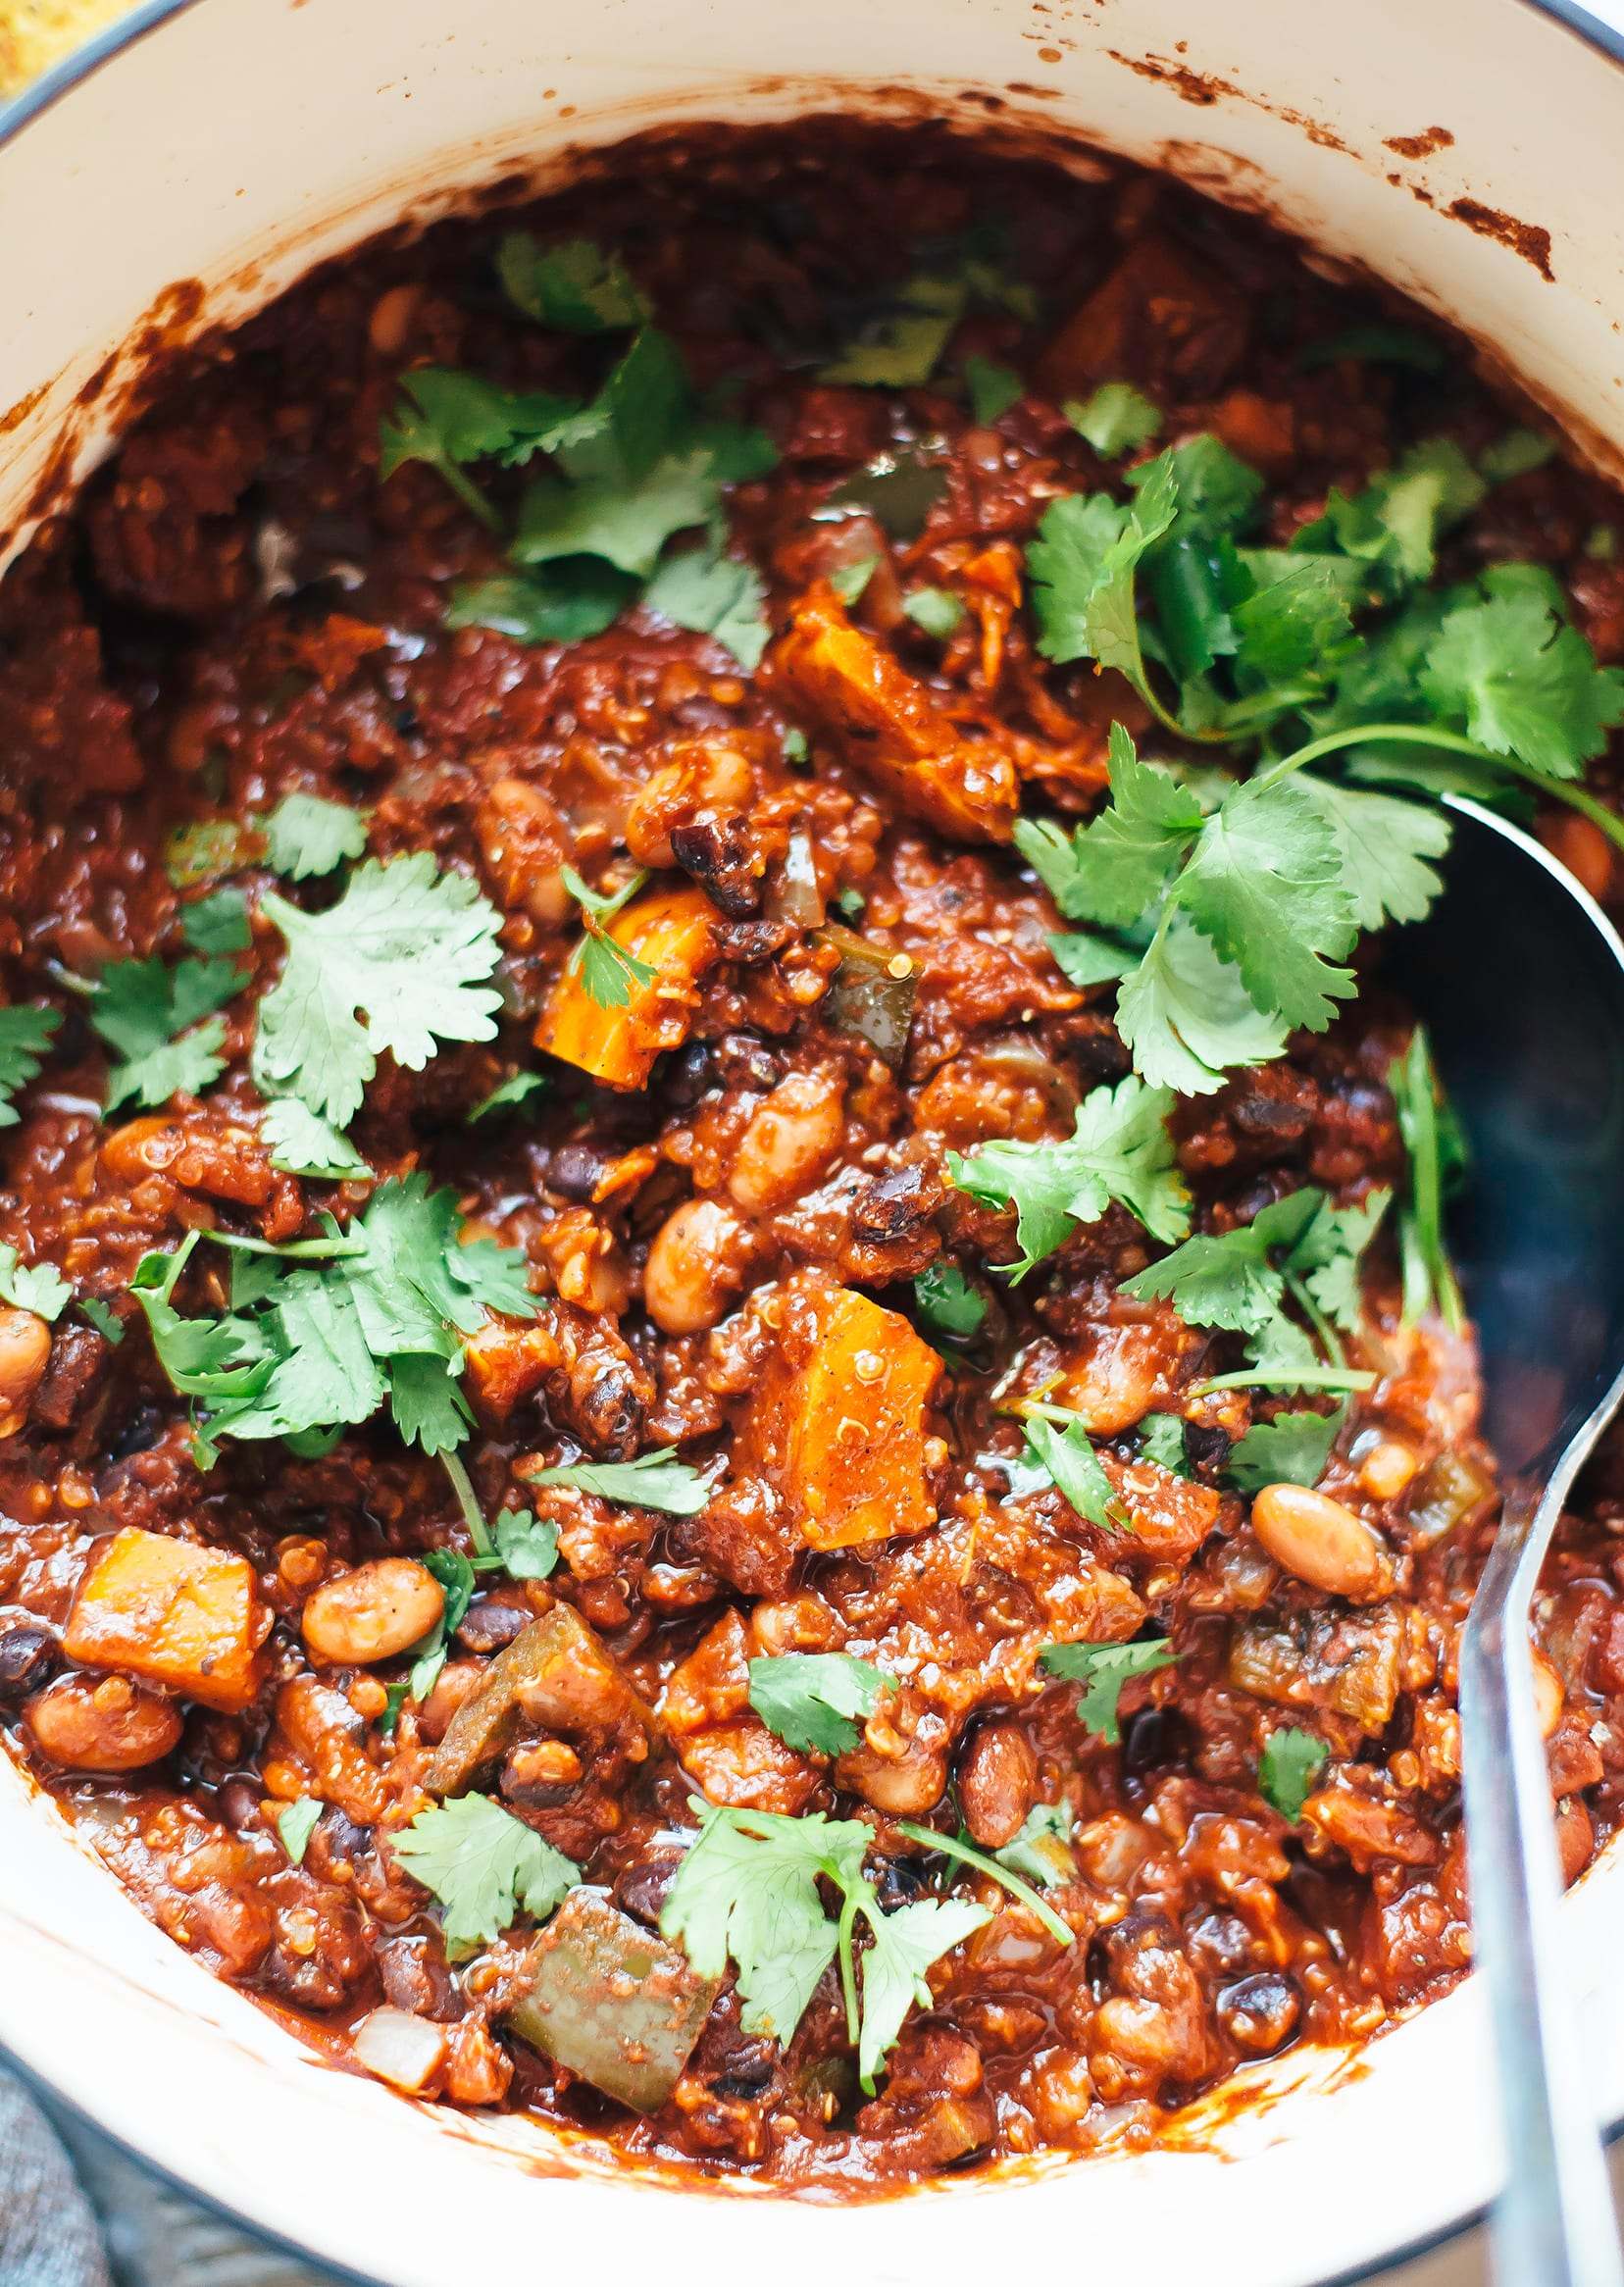 SMOKY SQUASH CHILI WITH QUINOA, PINTO & BLACK BEANS - The First Mess